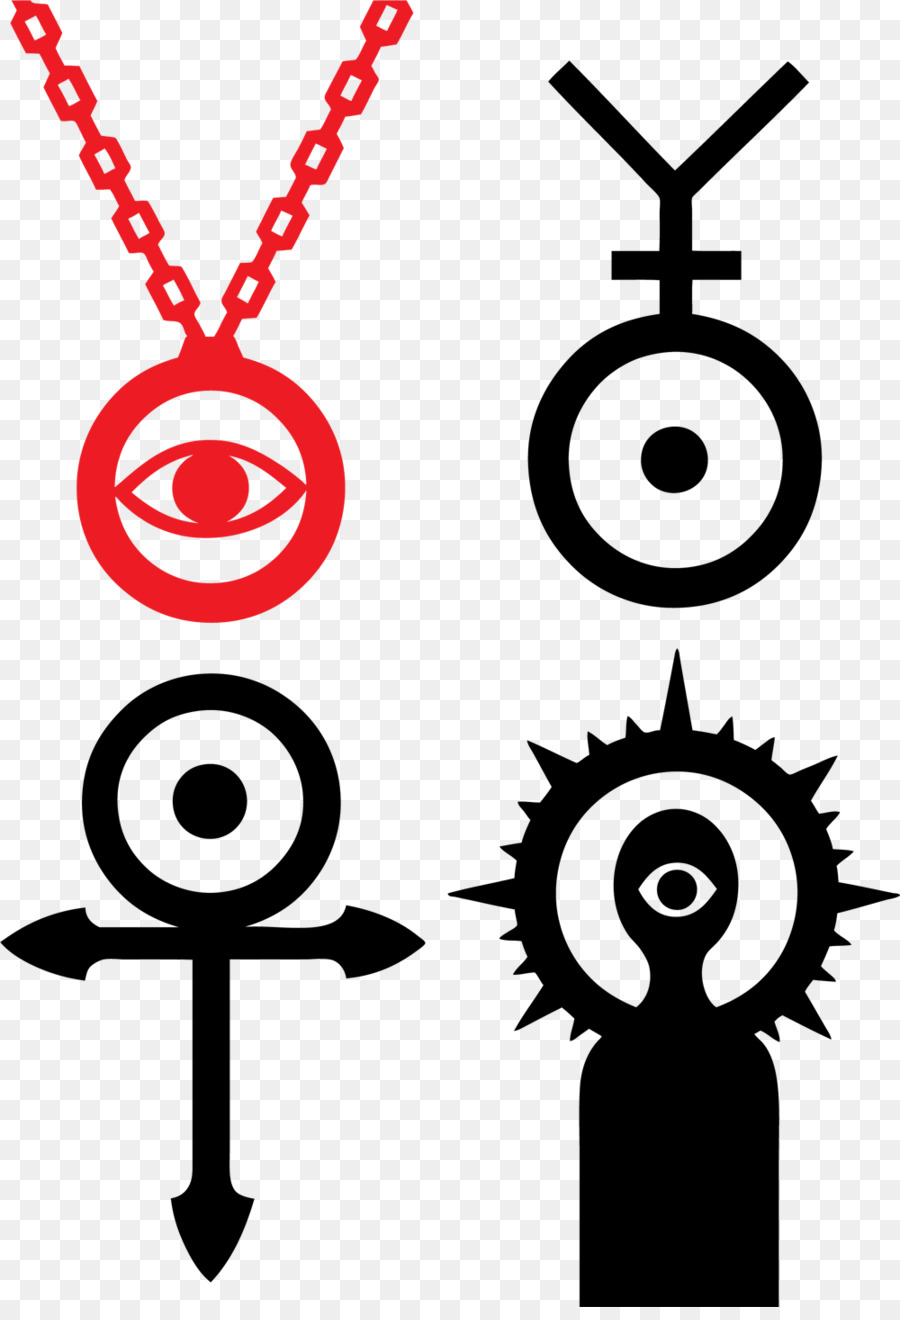 900x1320 scp foundation drawing wiki secure copy 900x1320 scp foundation drawing wiki secure copy 1200x675 cartoon world map clip art